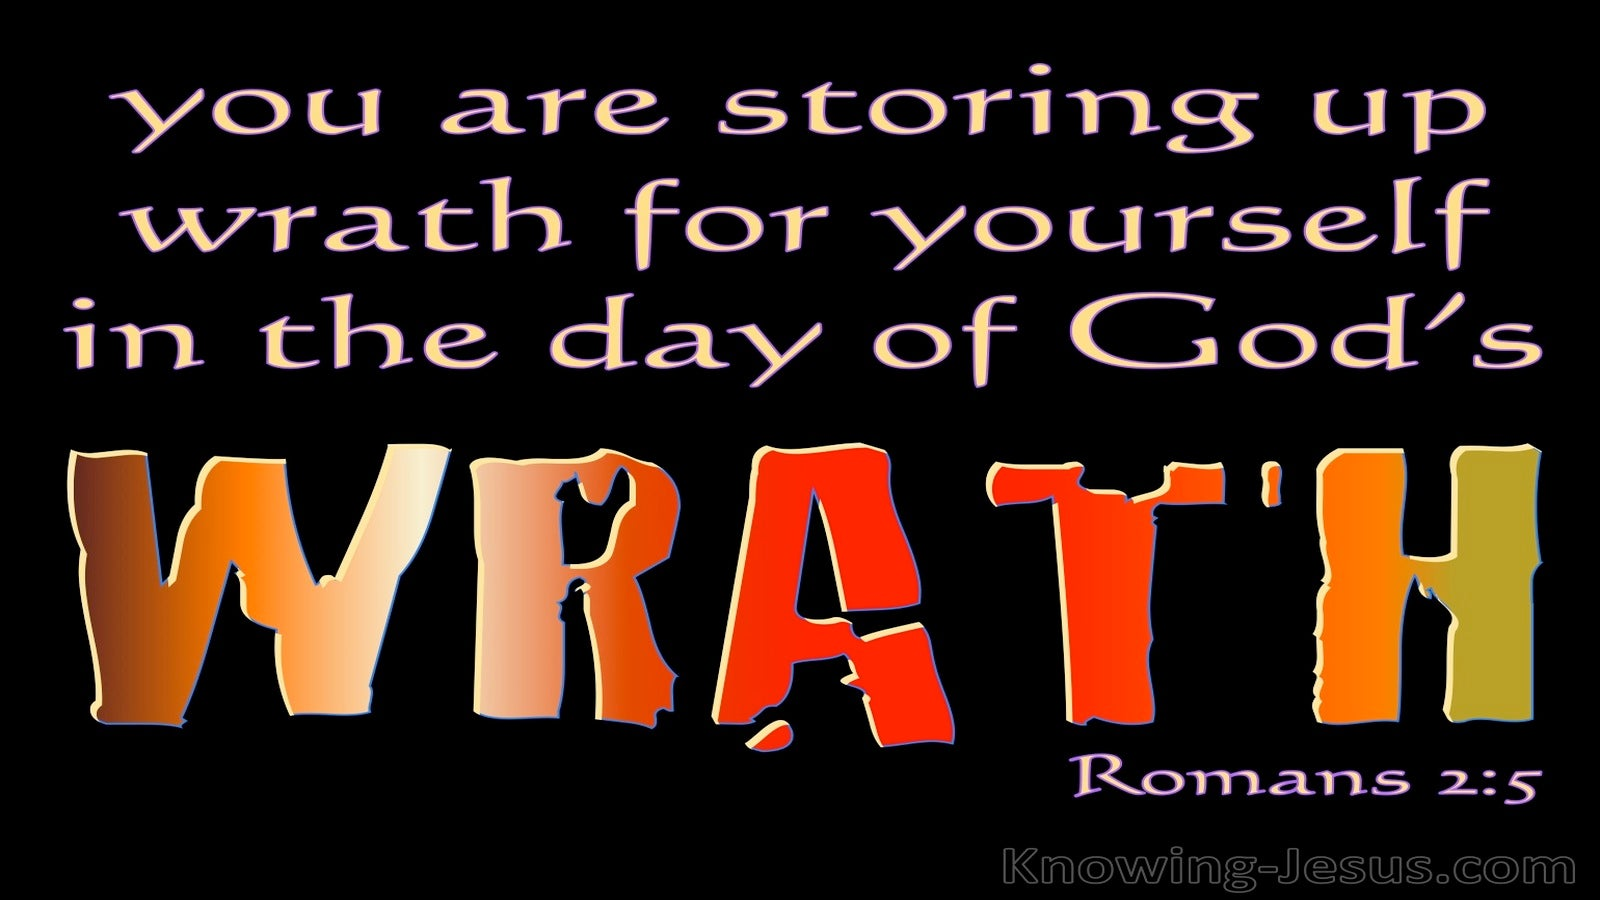 Romans 2:5 In The Day Of Gods Wrath (black)